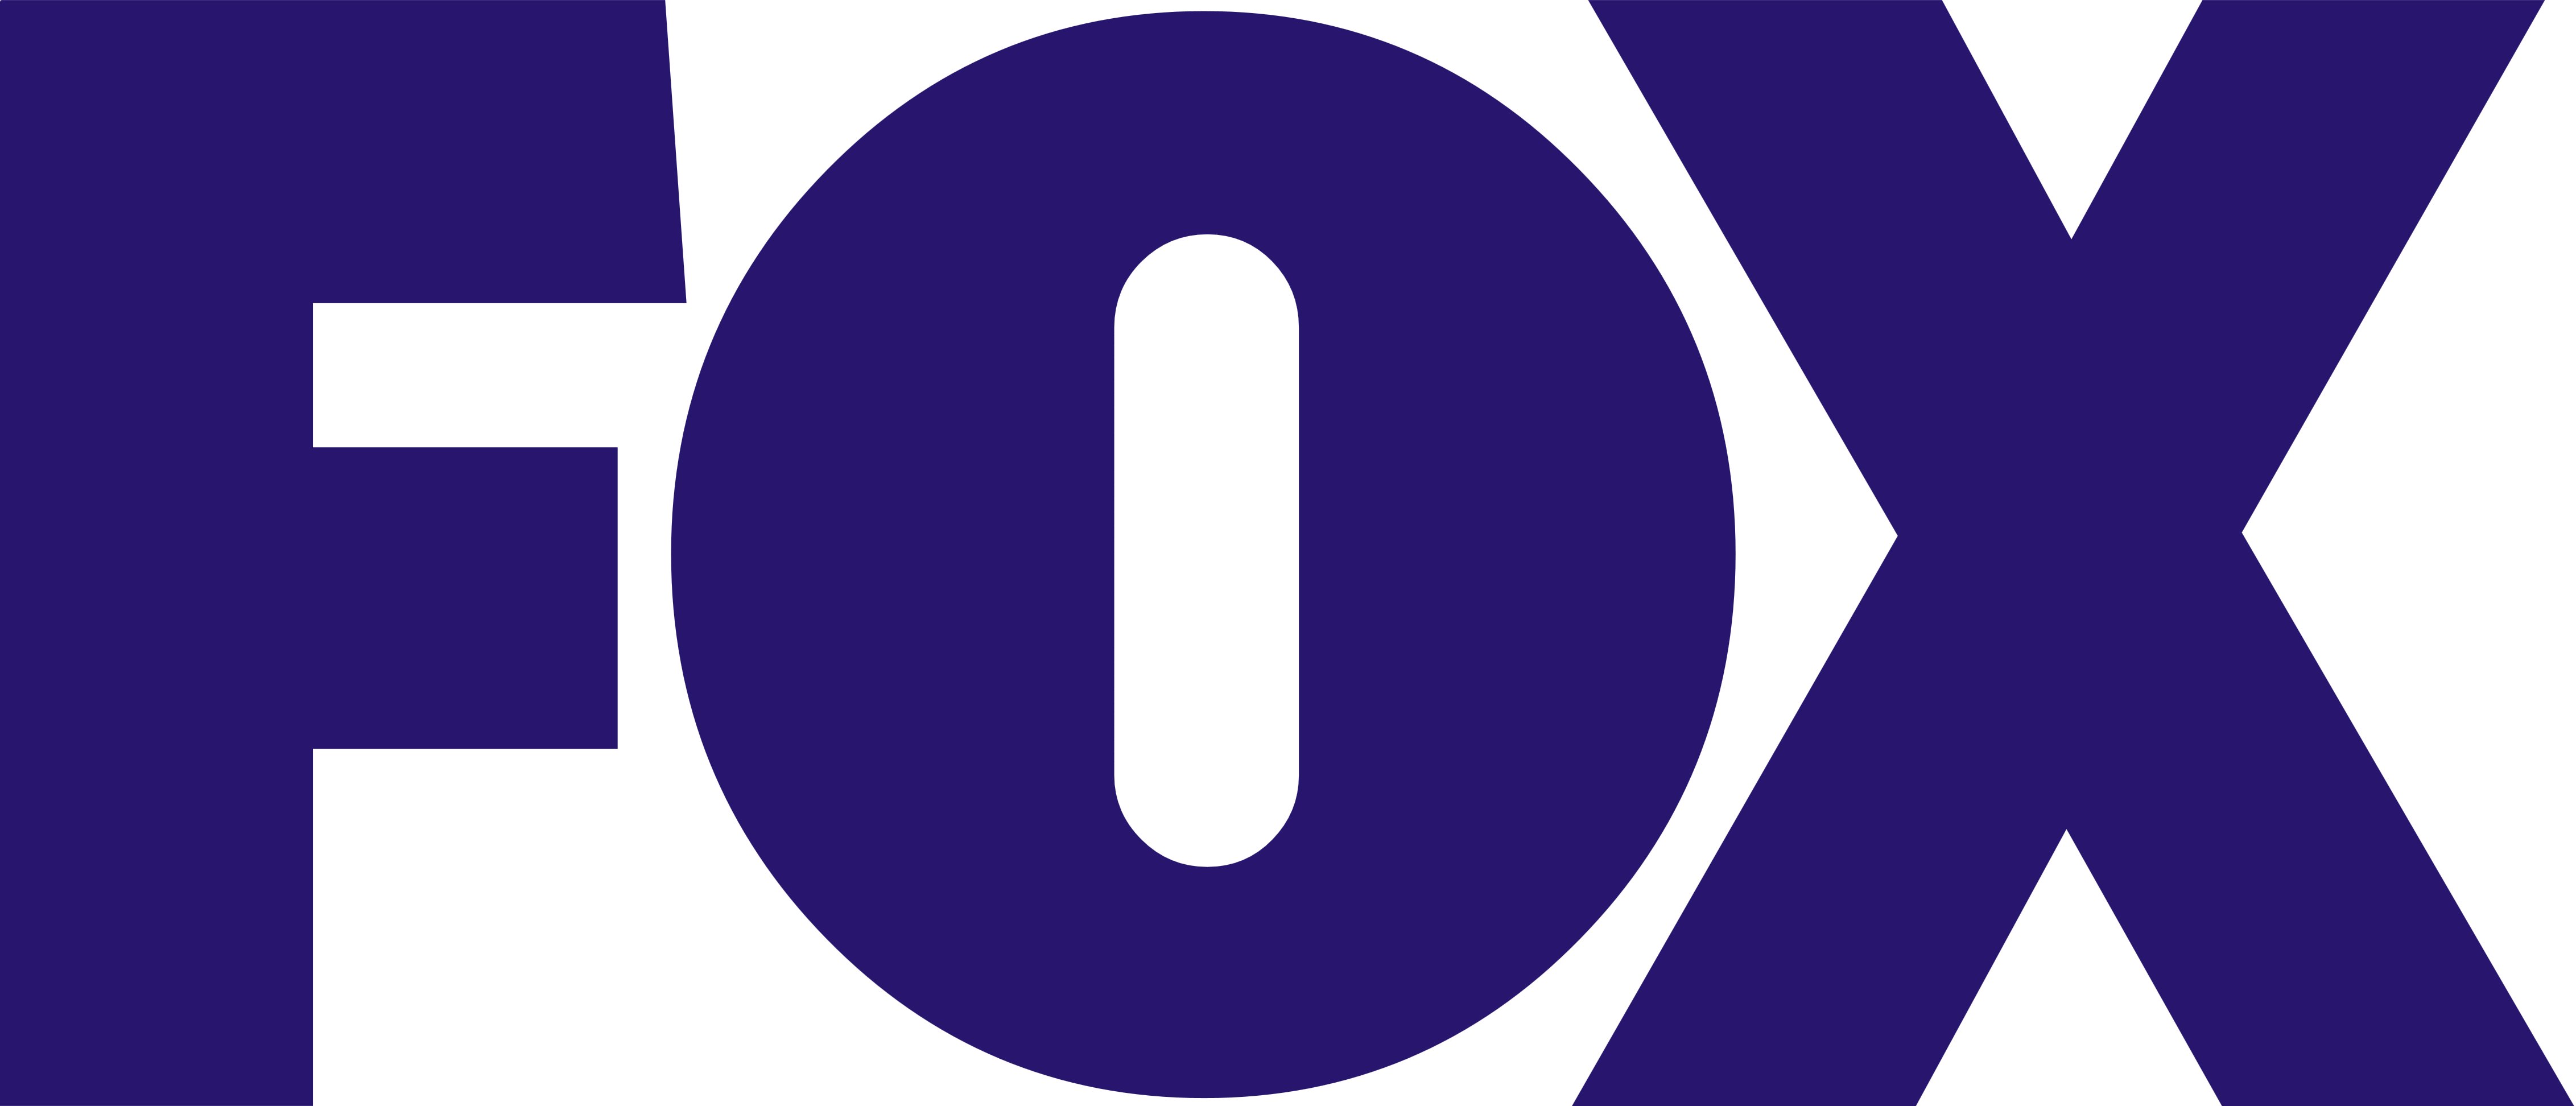 fox logo indigo color broadcasting company png #1638